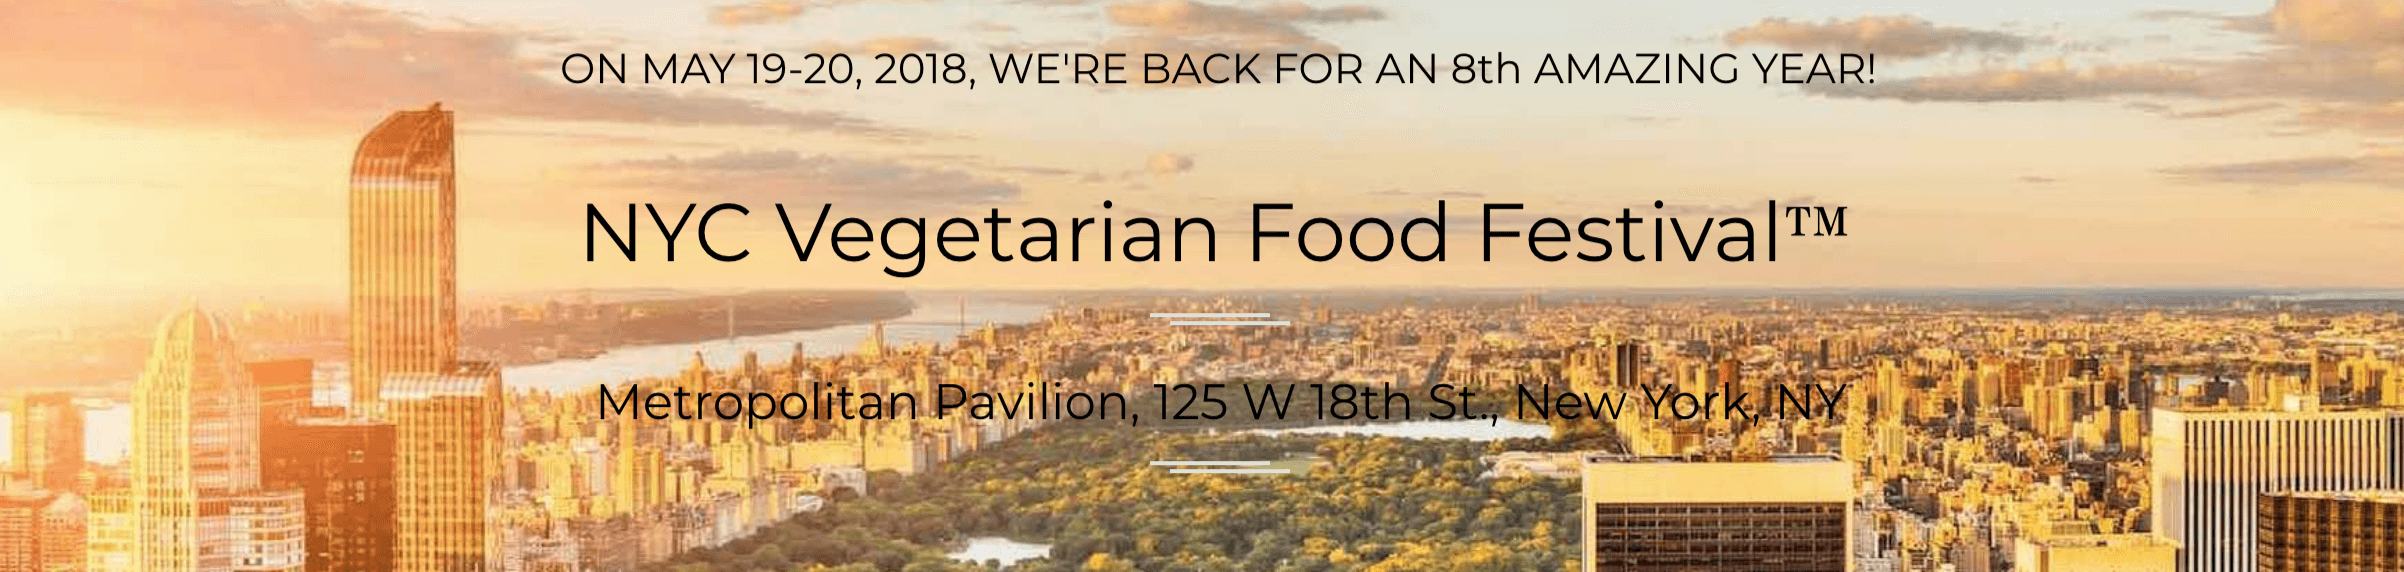 Out Experts Recaps BTSNYC NYC Vegetarian Food Festival 2018